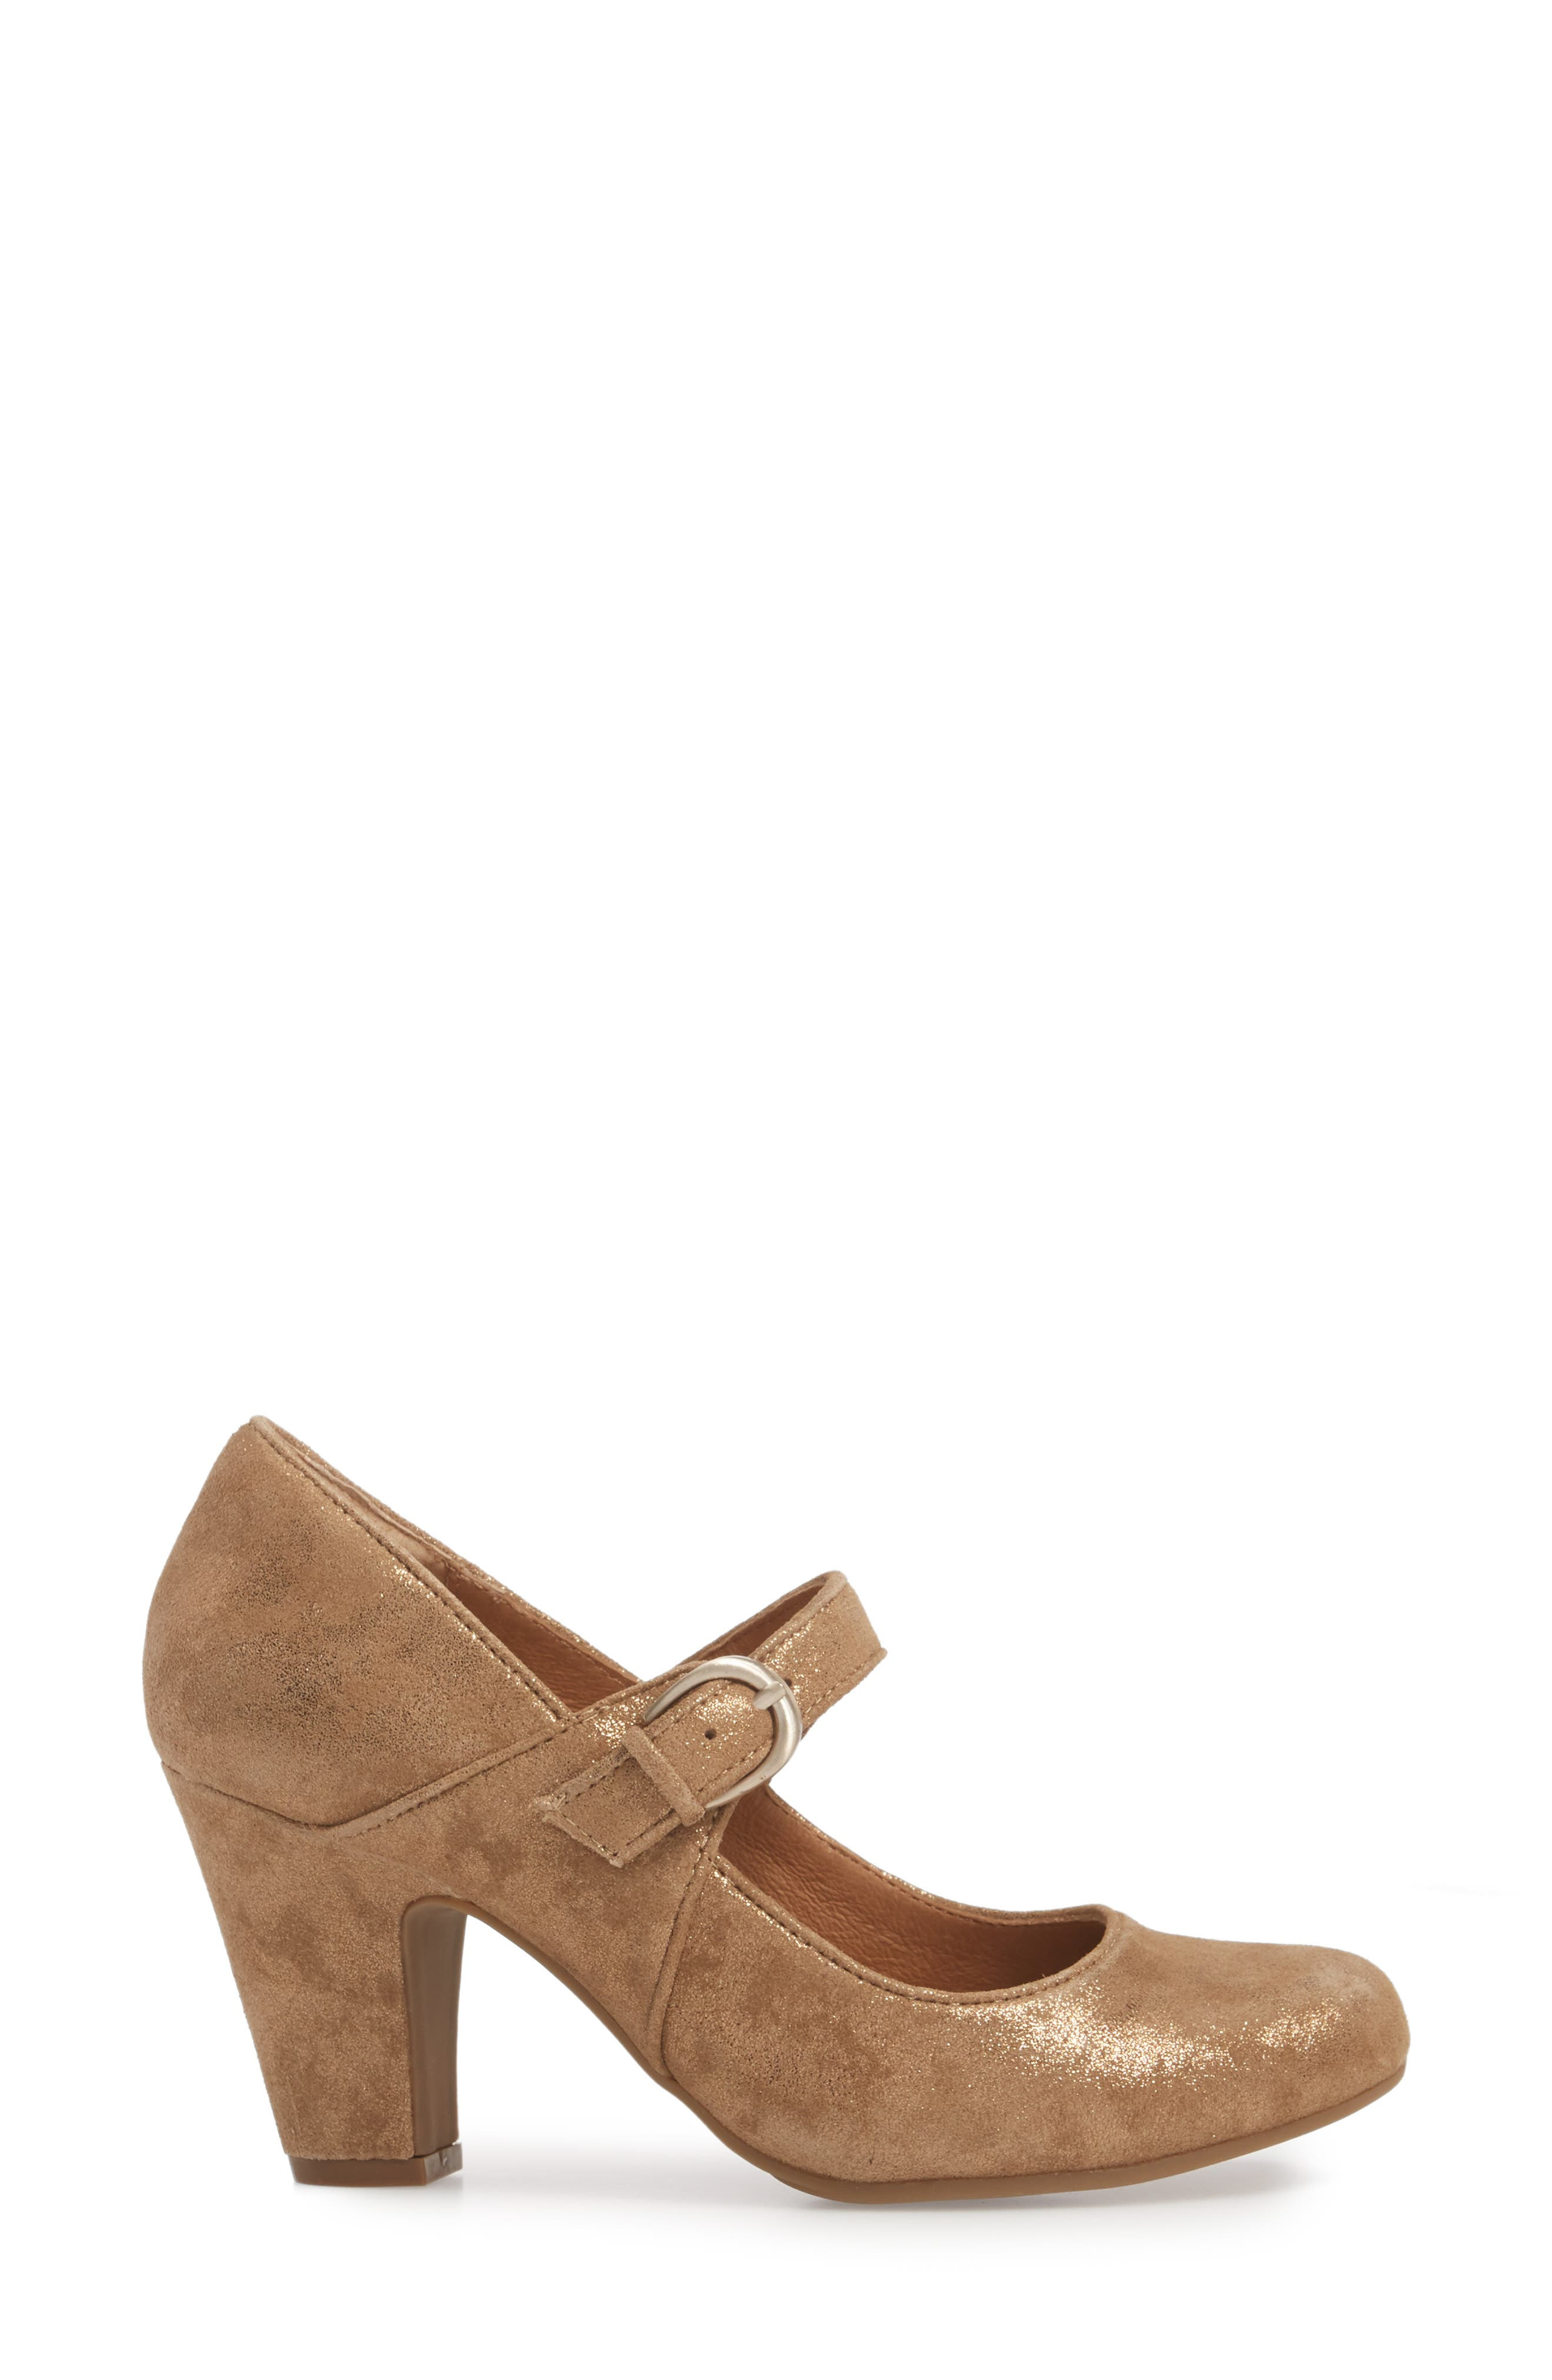 'Miranda' Mary Jane Pump,                             Alternate thumbnail 4, color,                             Gold Distressed Foil Suede